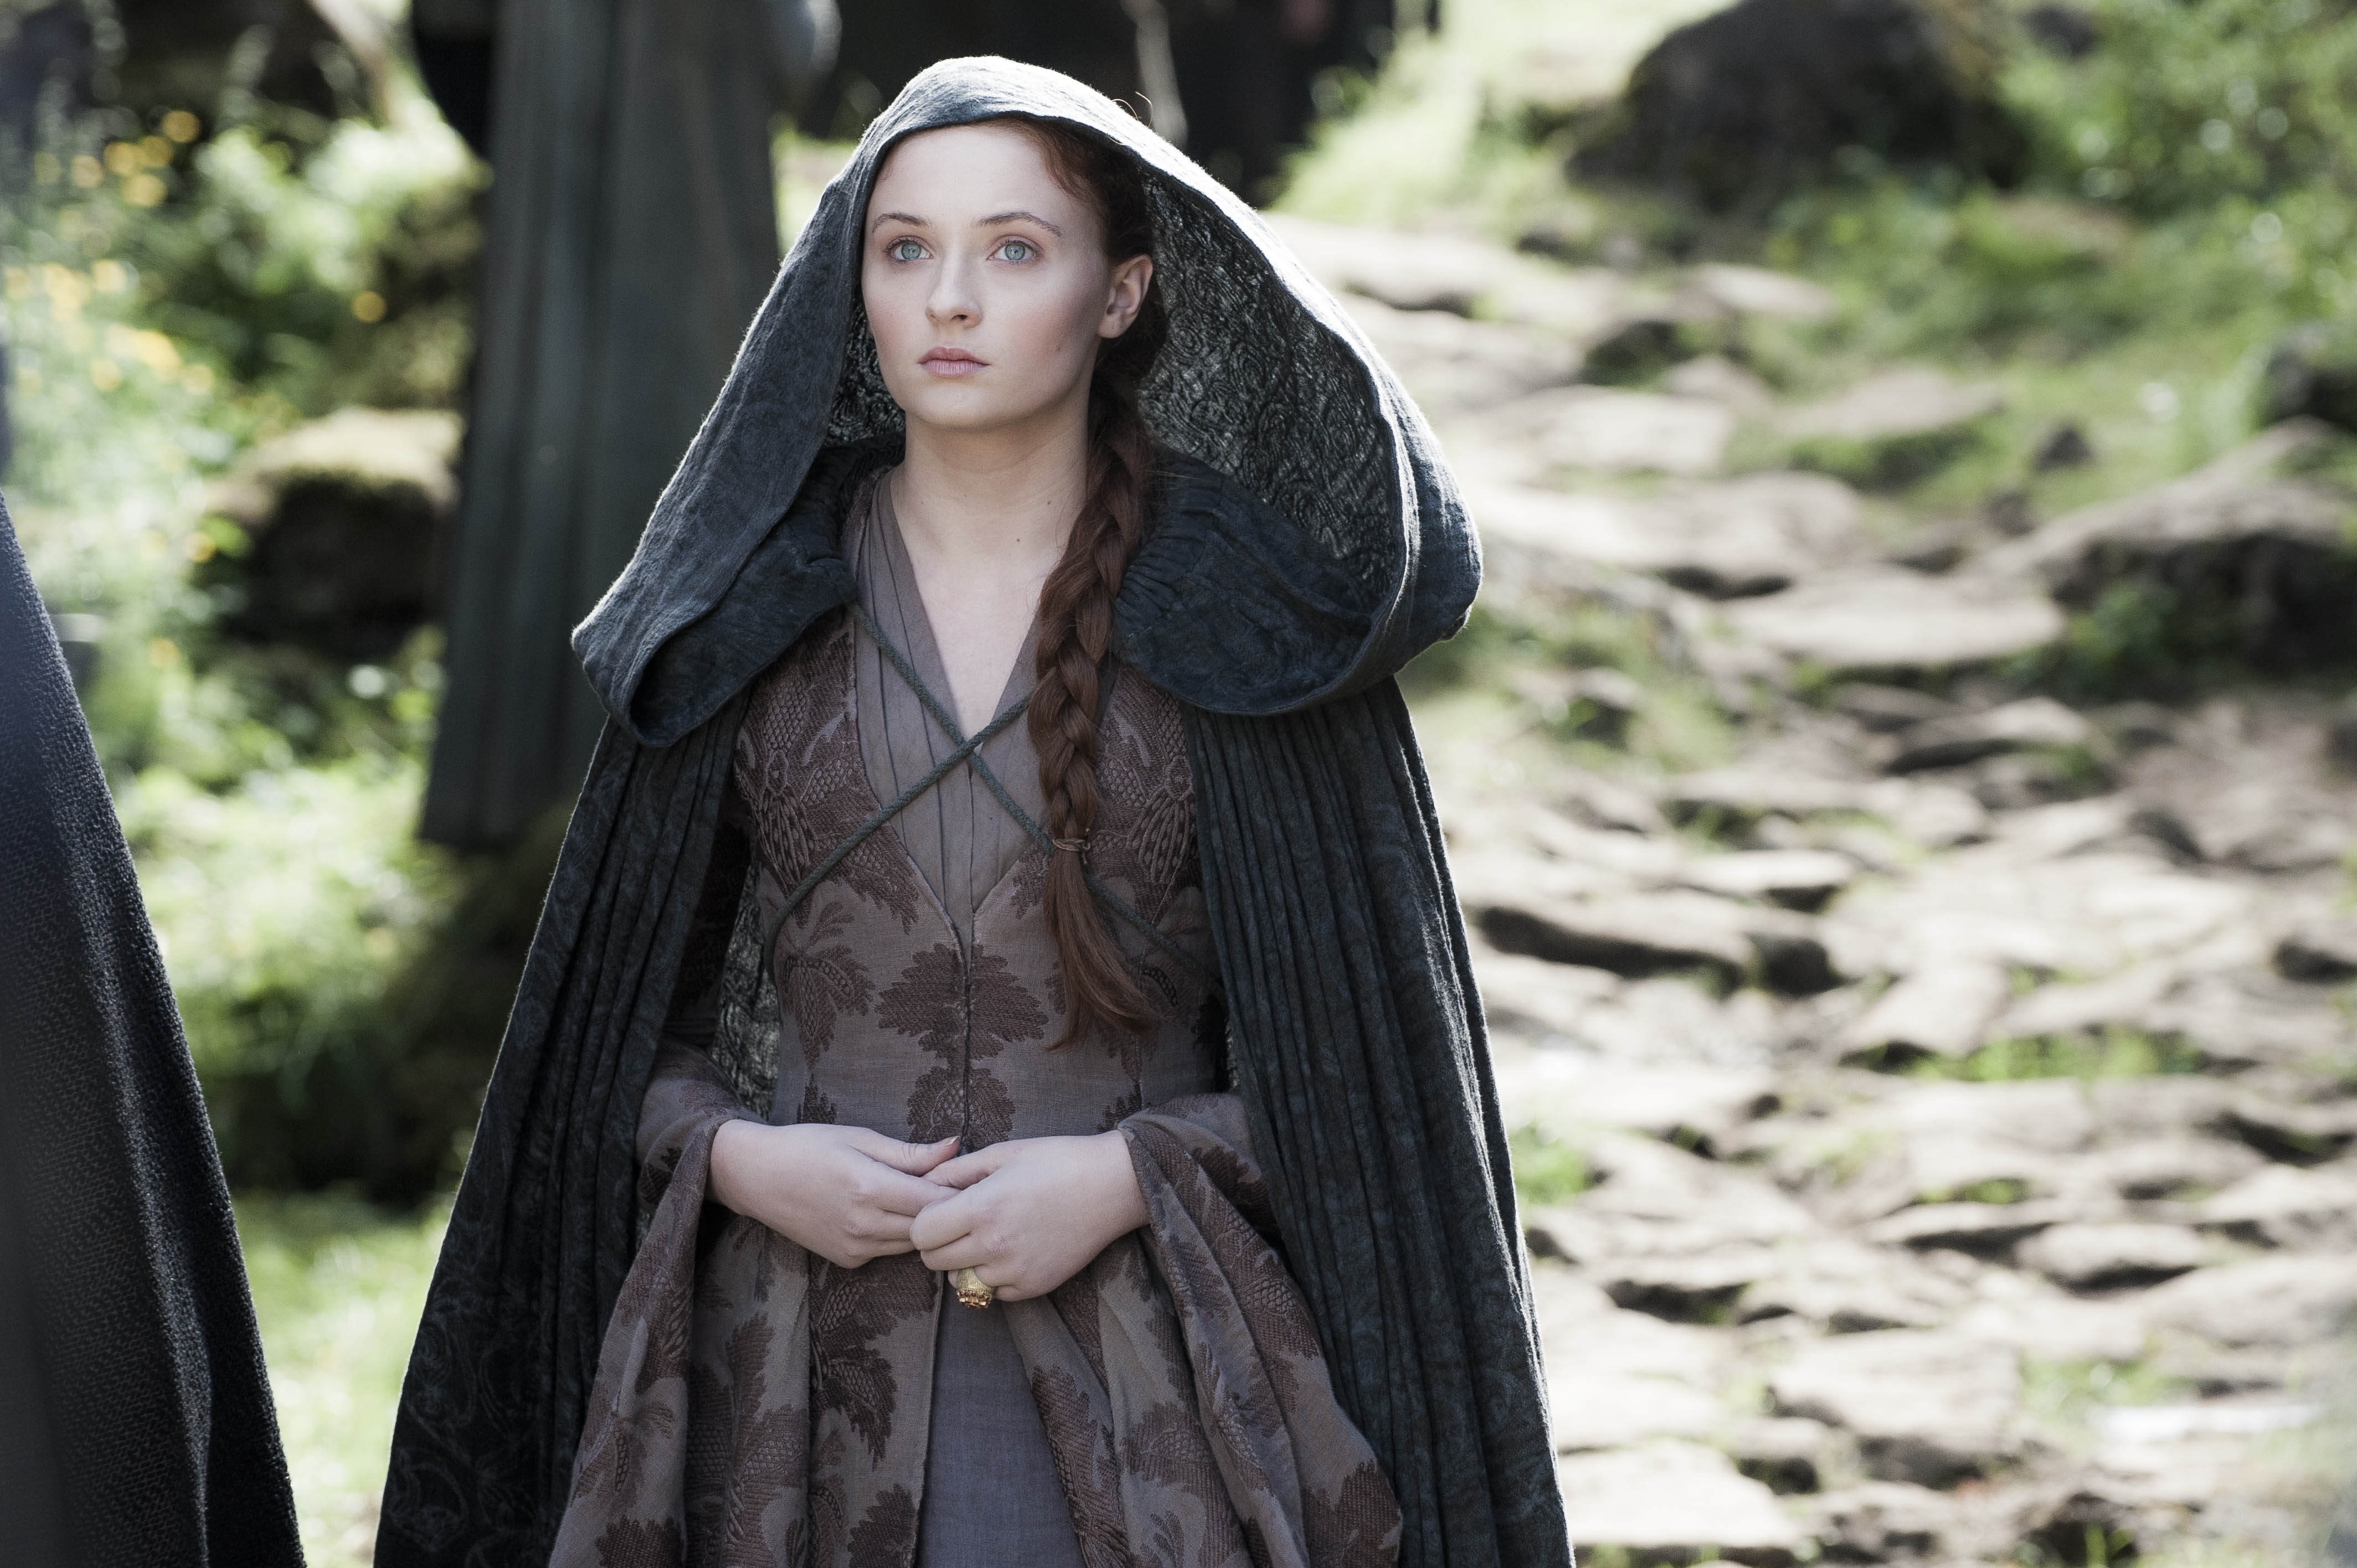 Season 4 Episode 5 First of His Name game of thrones 37070107 4256 2832 Sansa Stark Is P*ssed Off At How You Pronounce Her Name